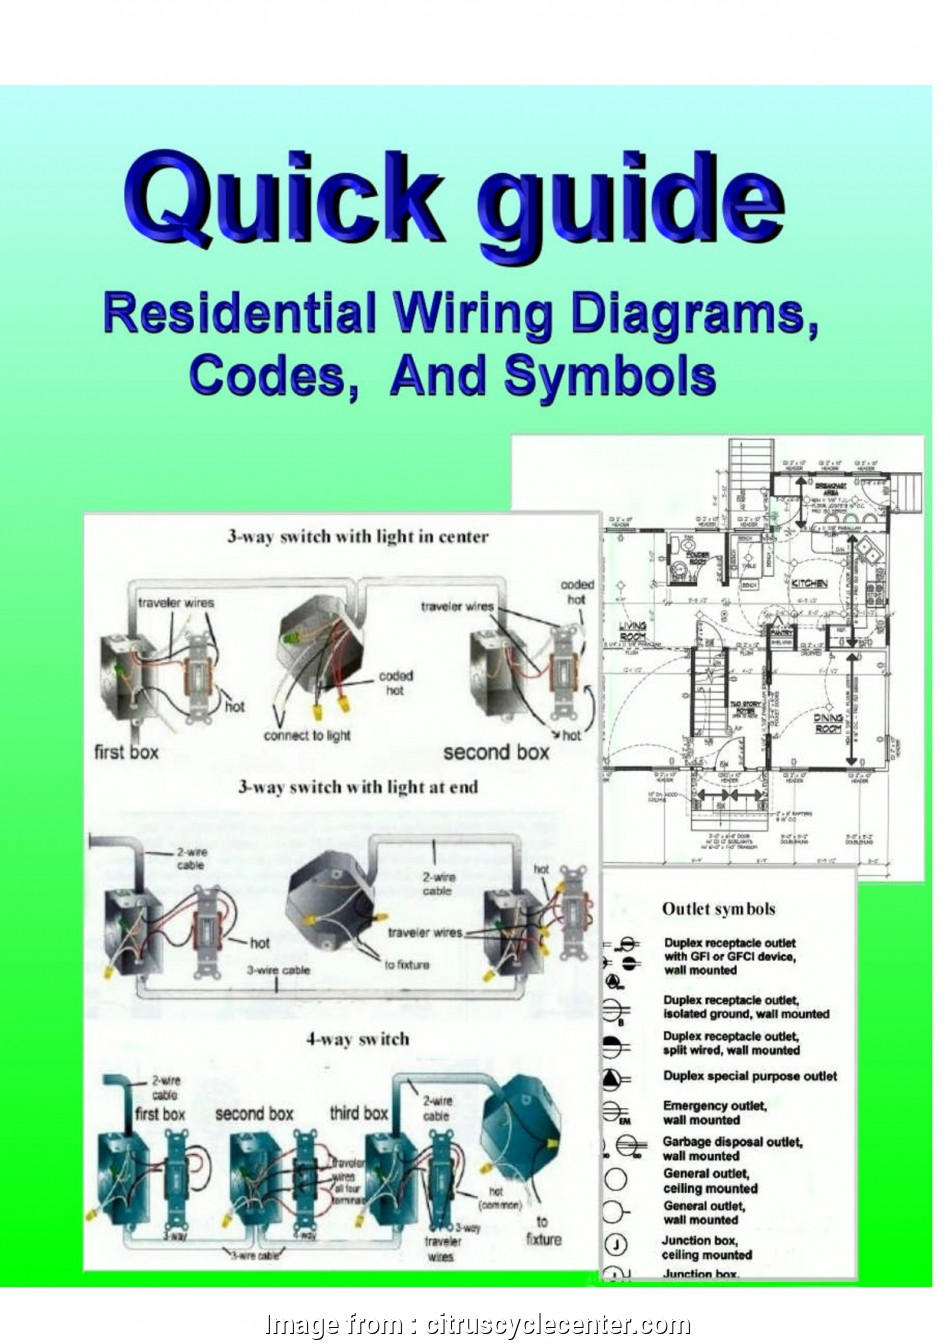 home electrical wiring symbols pdf Electrical Wiring Diagram Symbols, Best Of Australian Electrical Wiring Diagram Symbols Fresh Home Electrical 17 Best Home Electrical Wiring Symbols Pdf Galleries